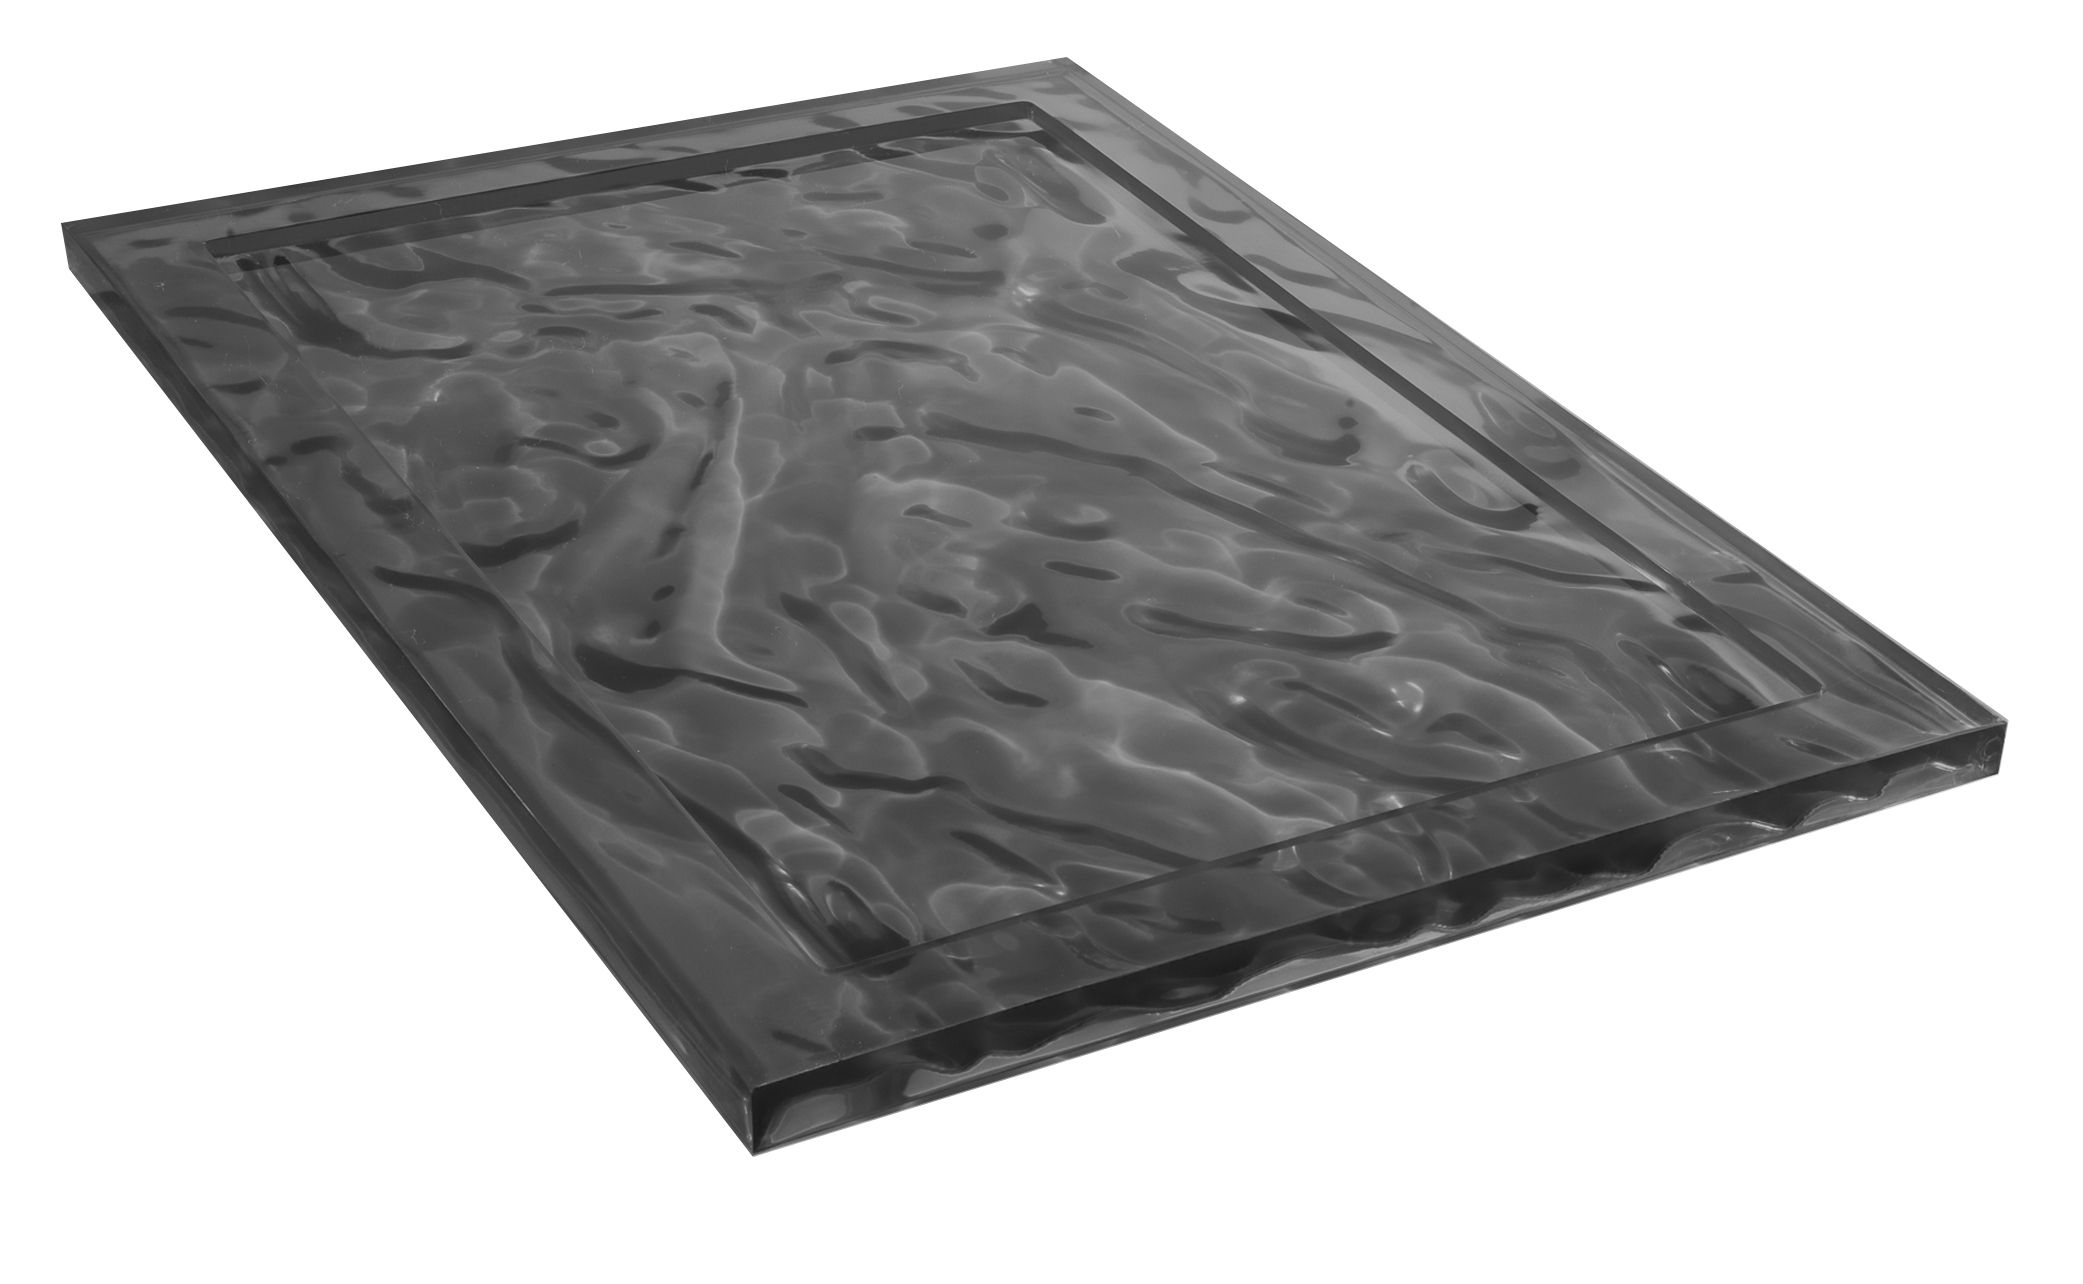 Tableware - Trays - Dune Small Tray - 46 x 32 cm by Kartell - Smoked - Technopolymer